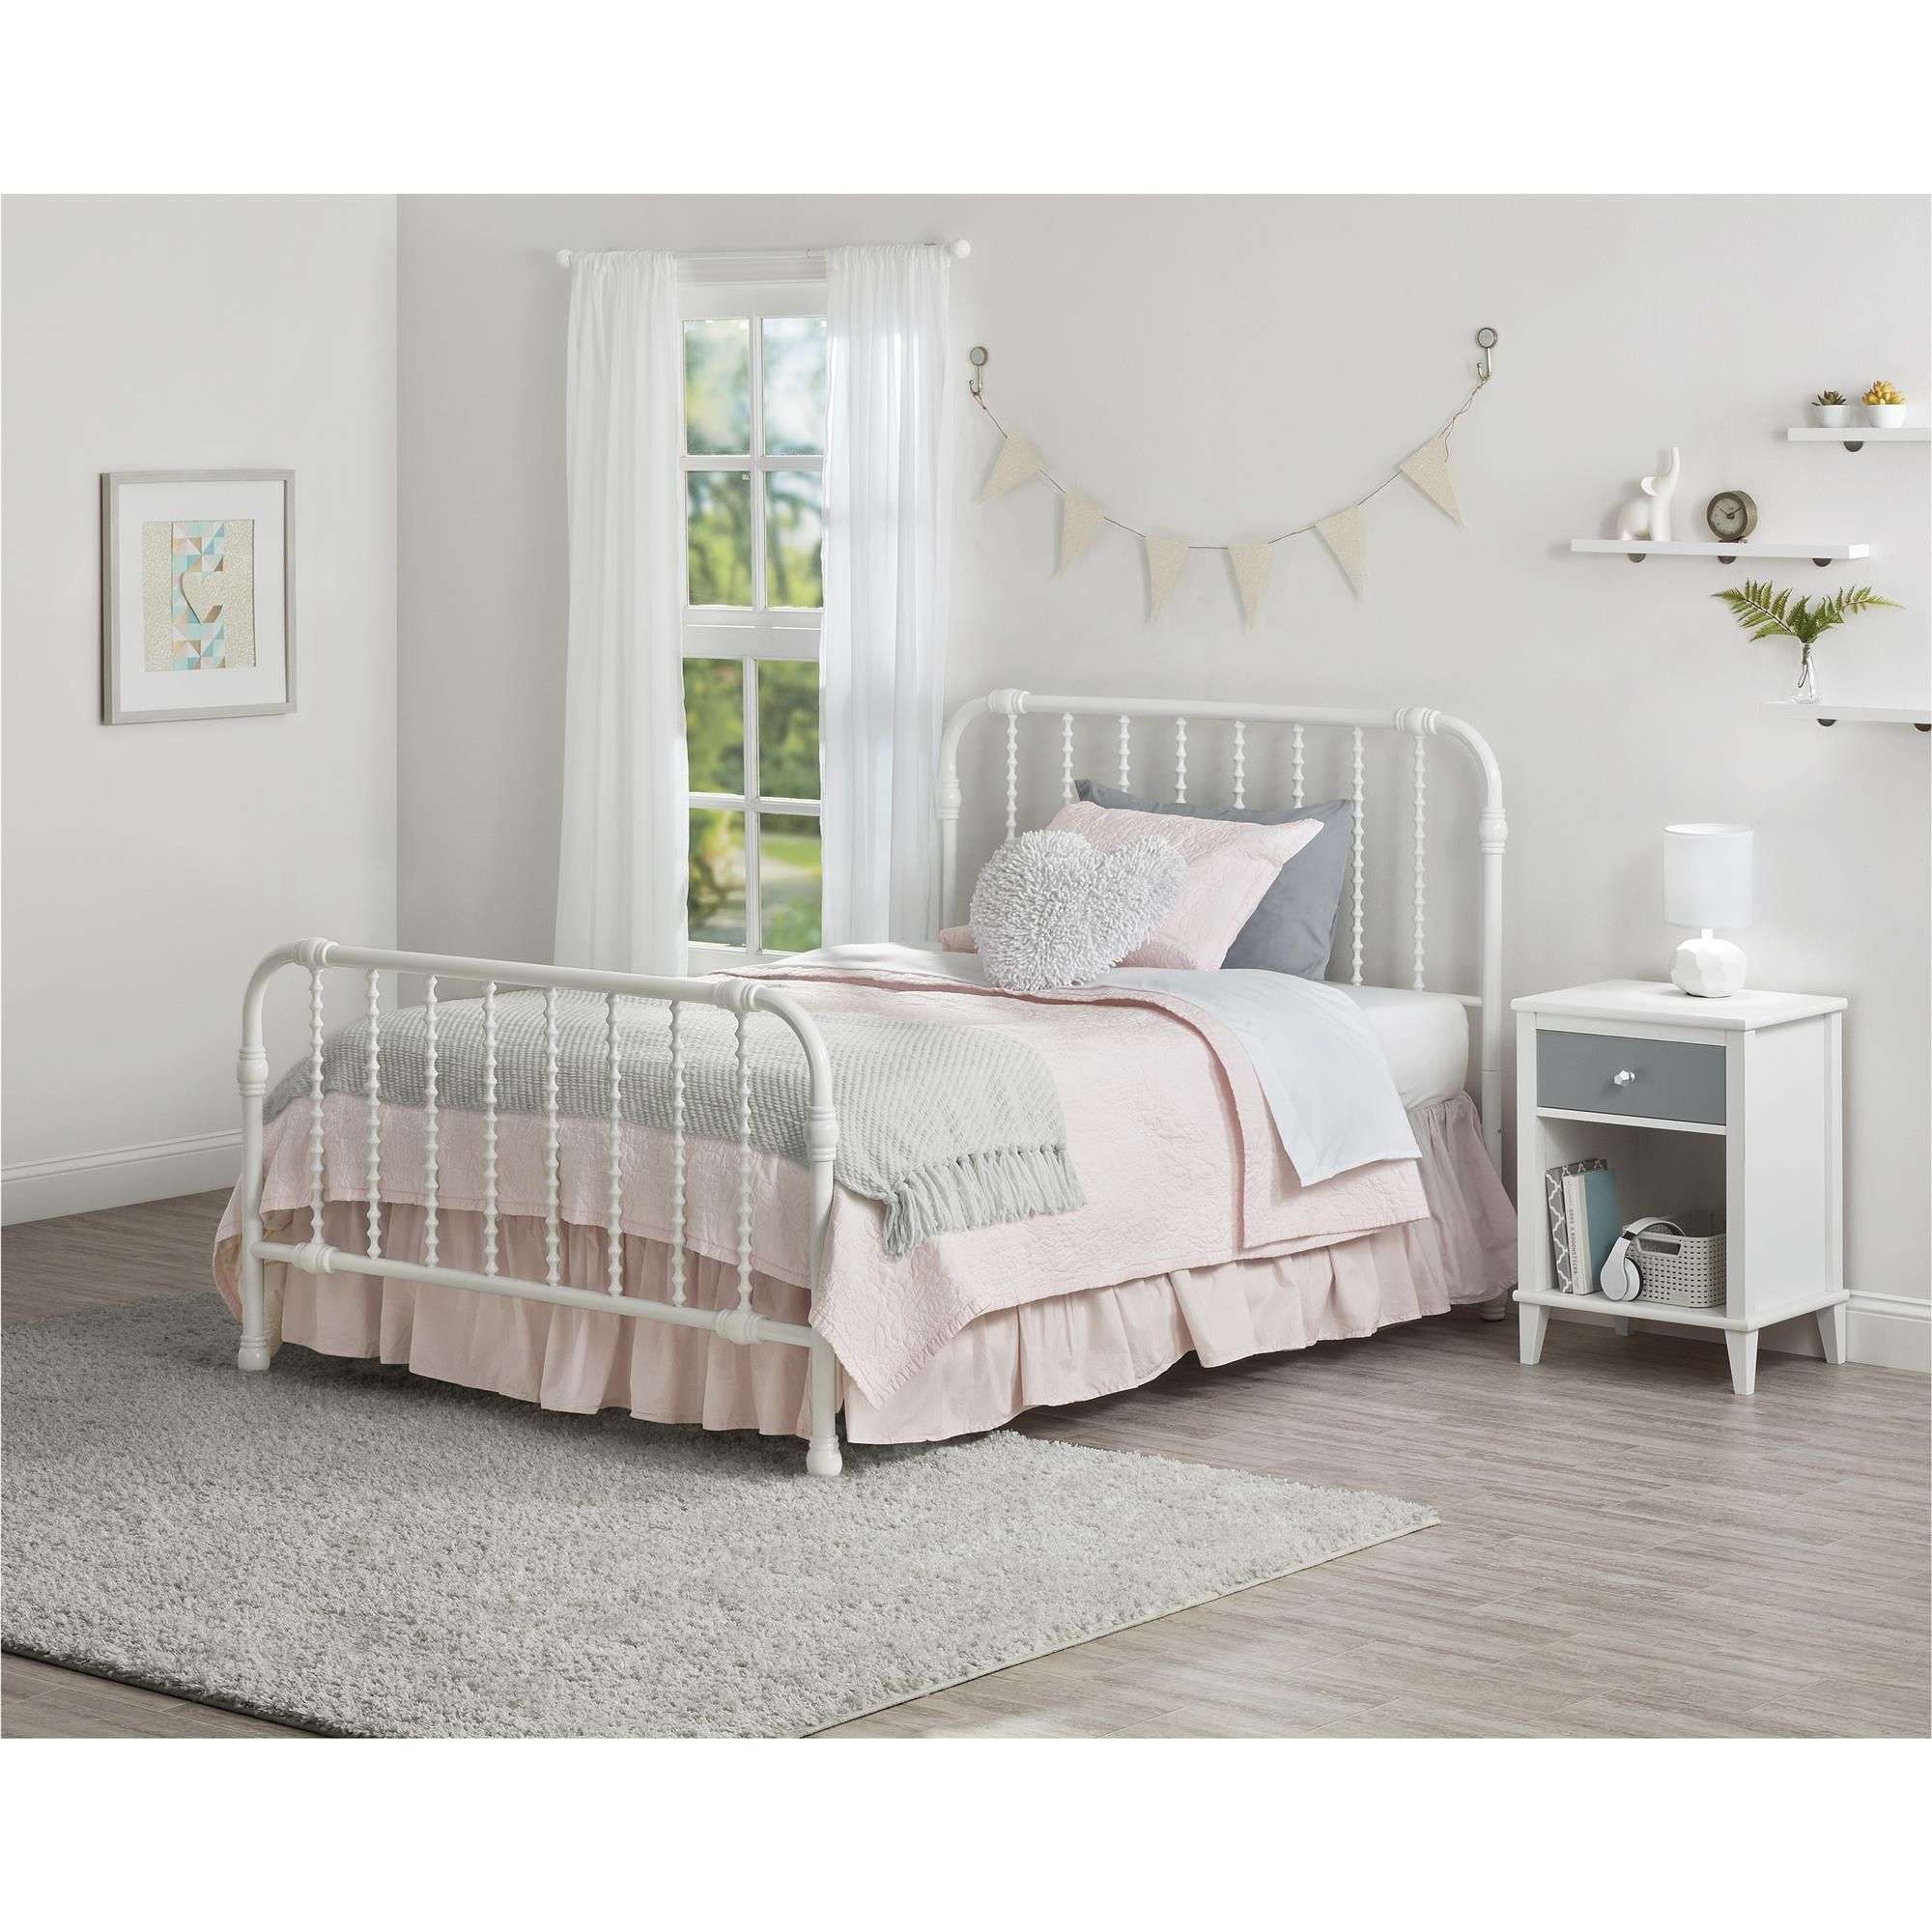 Home Metal beds, Furniture, White metal bed